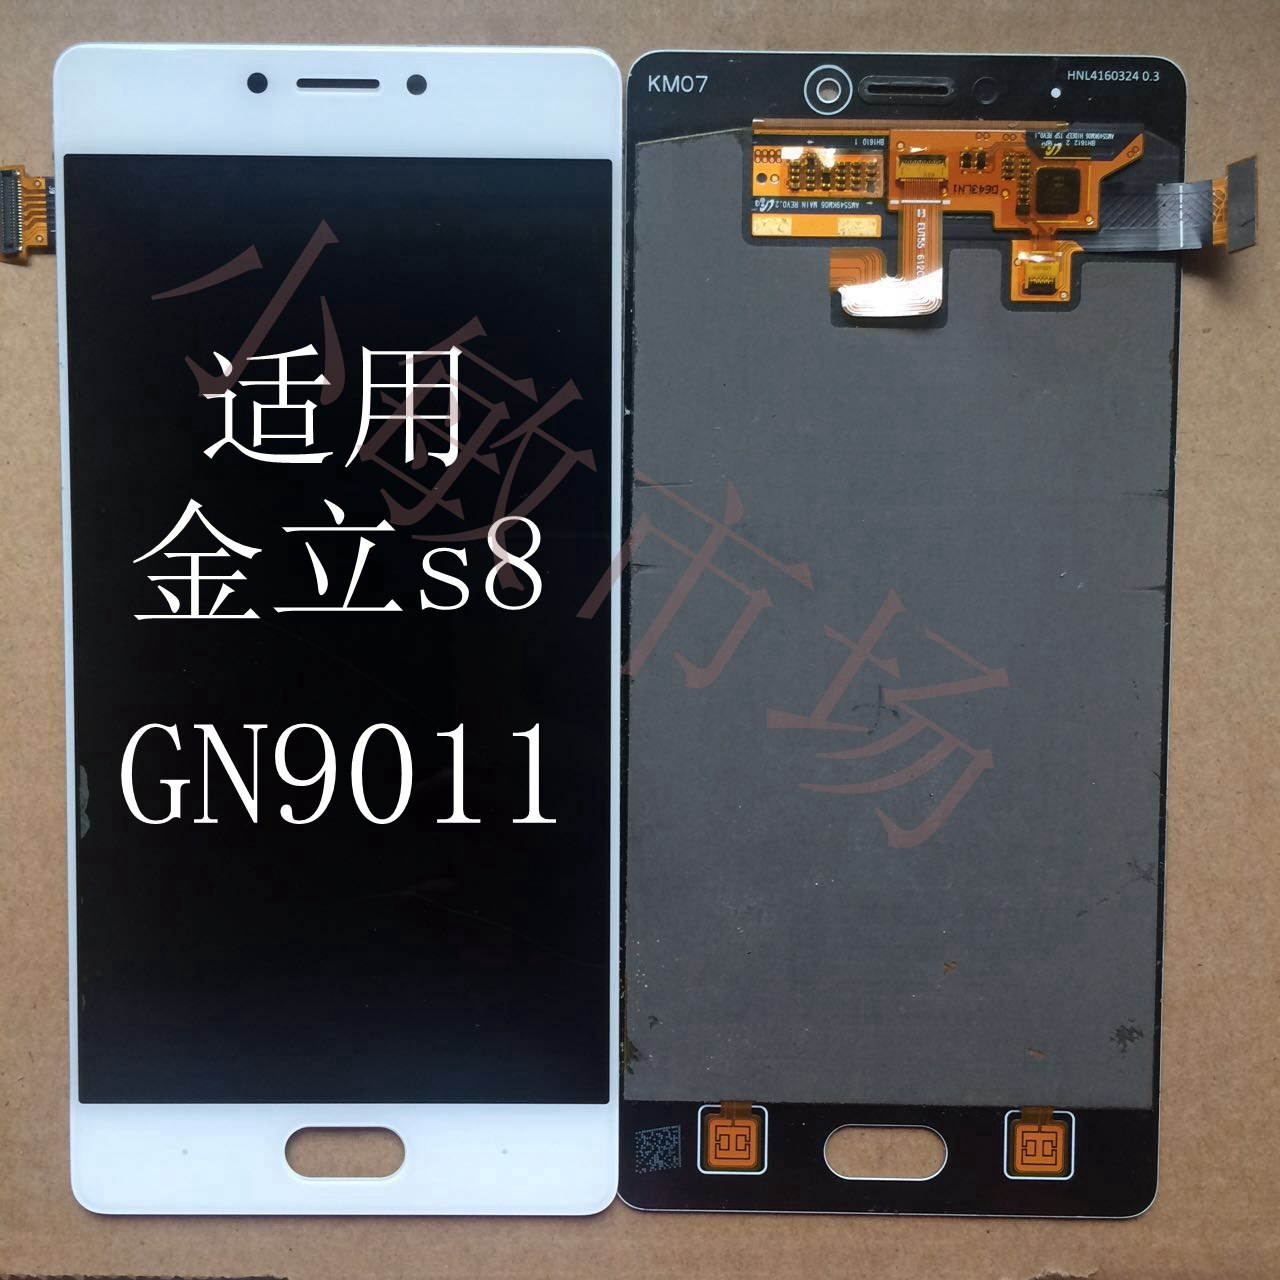 Application of liquid crystal display screen and Jin M3m6m5gn8001s6gn9010s8 mobile phone assembly